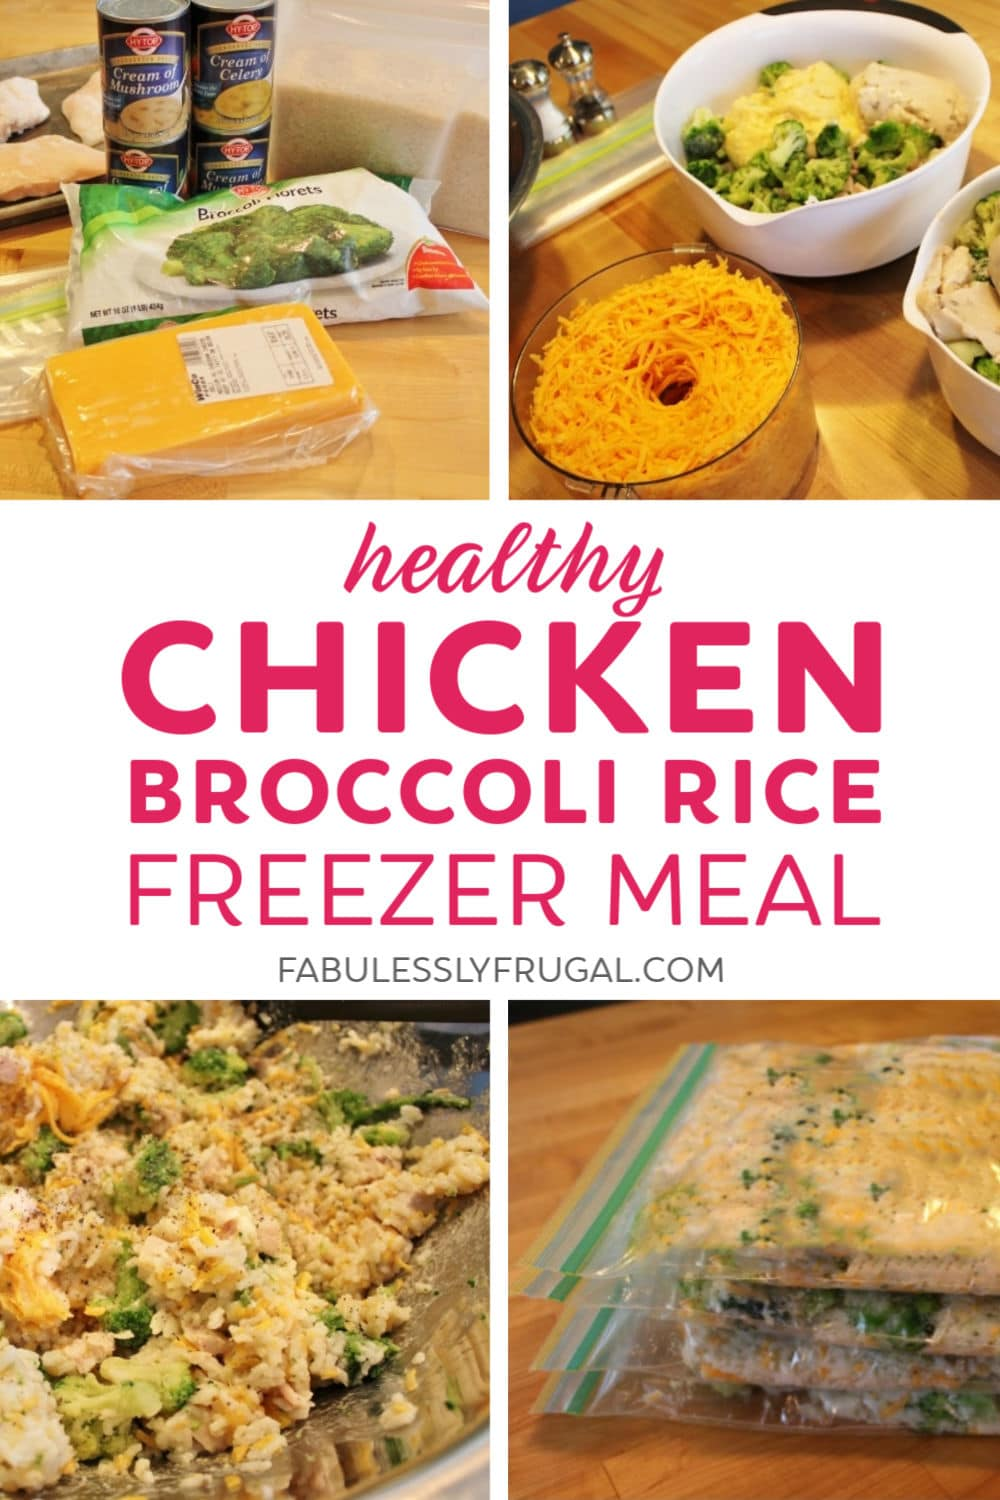 Chicken broccoli rice freezer meal